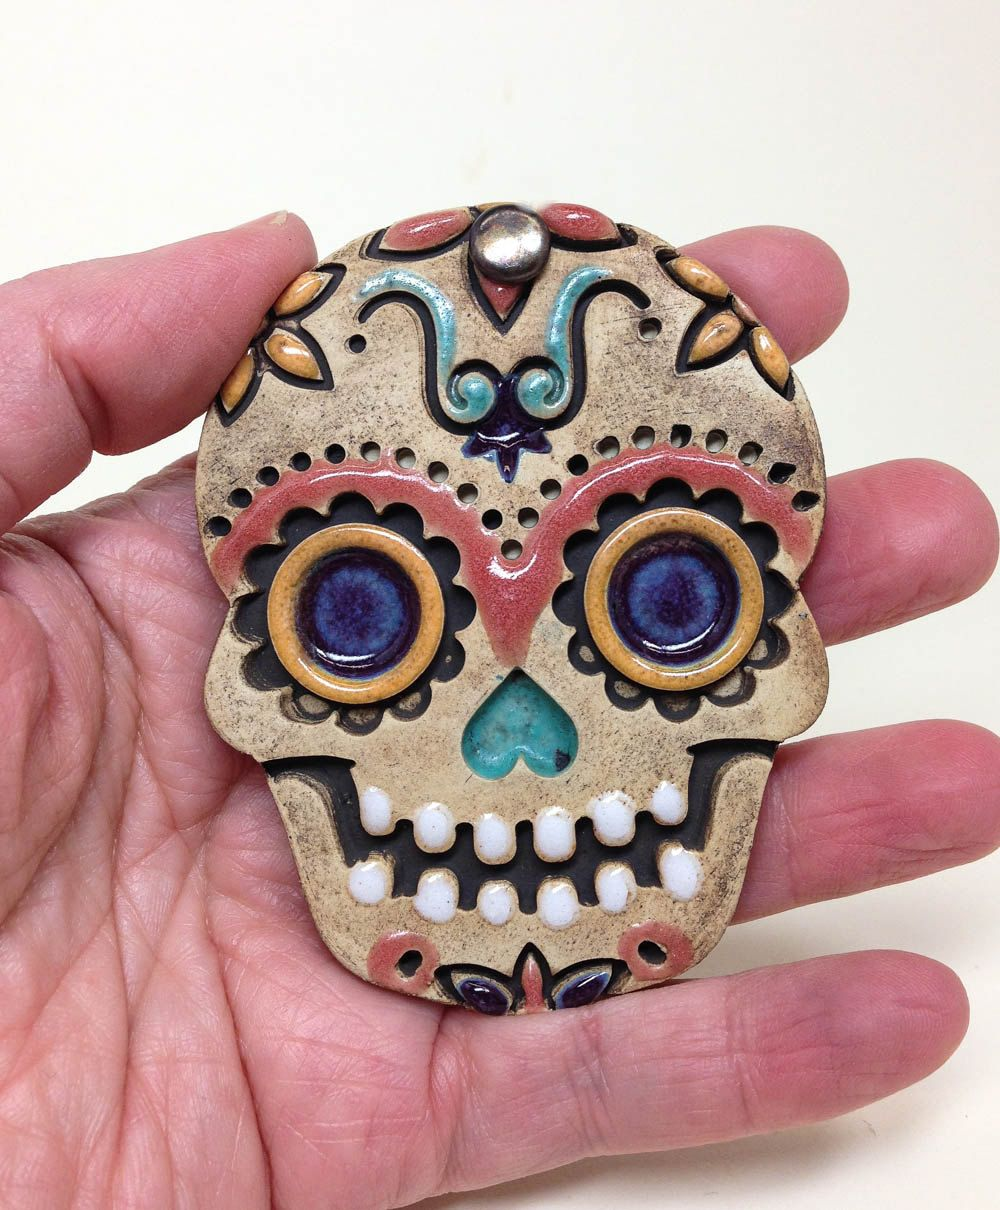 Ceramic Wall Hanging Day Of The Dead Ornament Sugar Skull Pottery Decor Skeleton Mexican Folk Art Dia De Lo Sugar Skull Mexican Folk Art Clay Wall Hanging